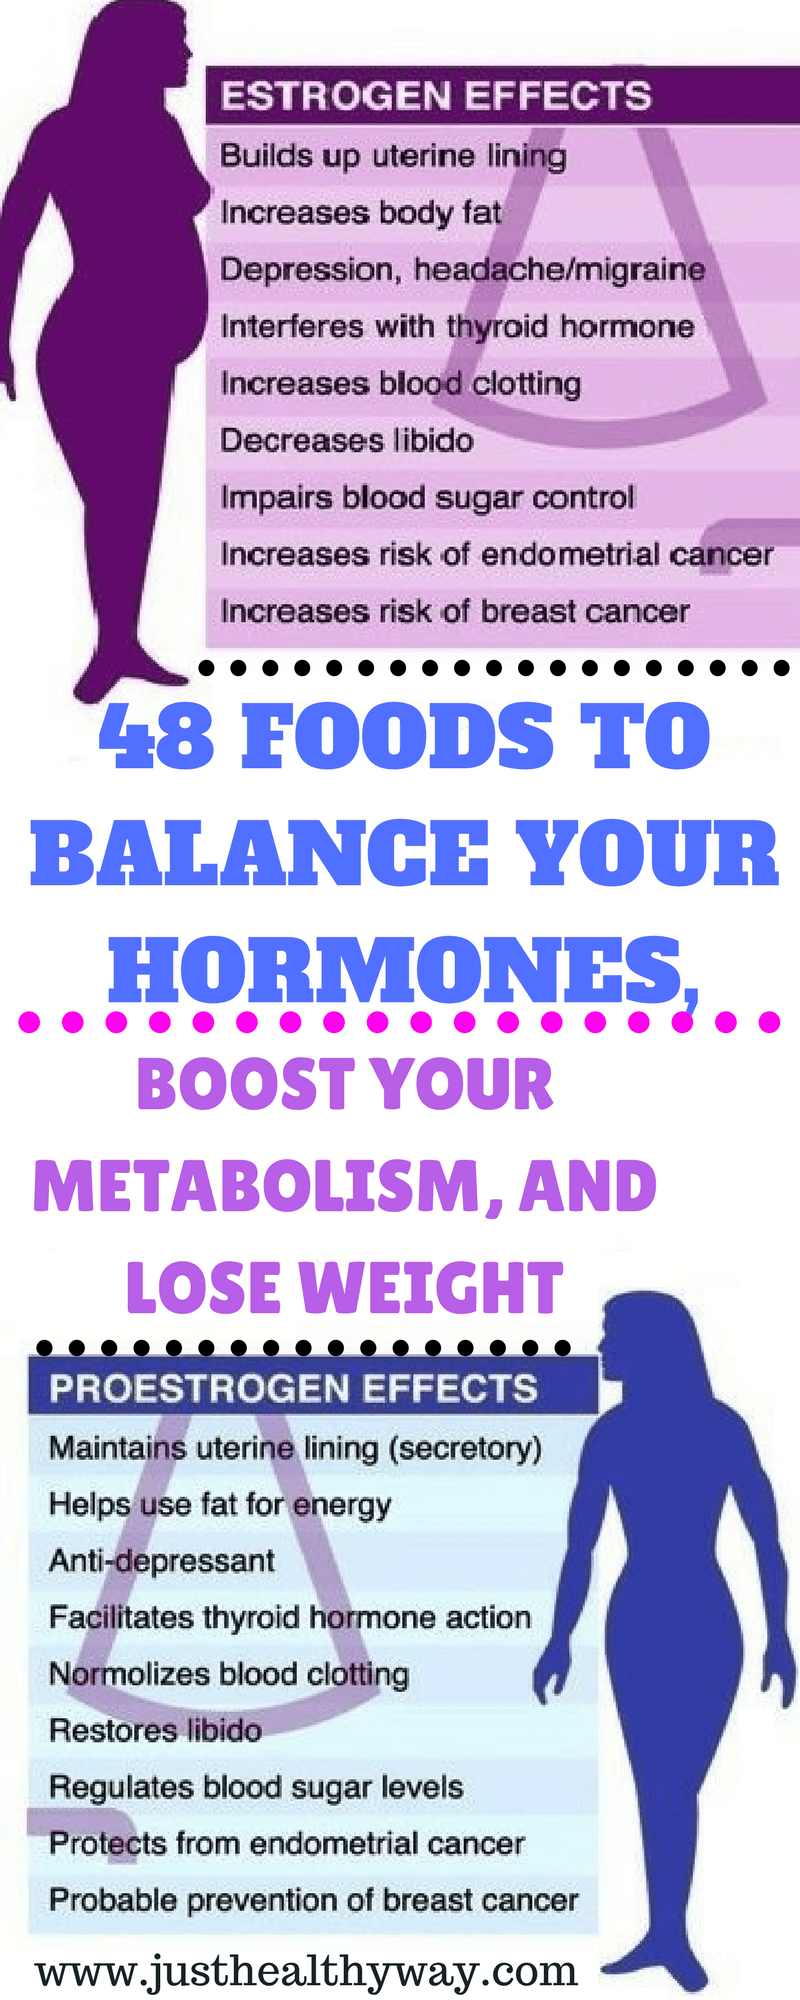 Watch 9Crucial Things That Can Lead toaHormonal Imbalance video